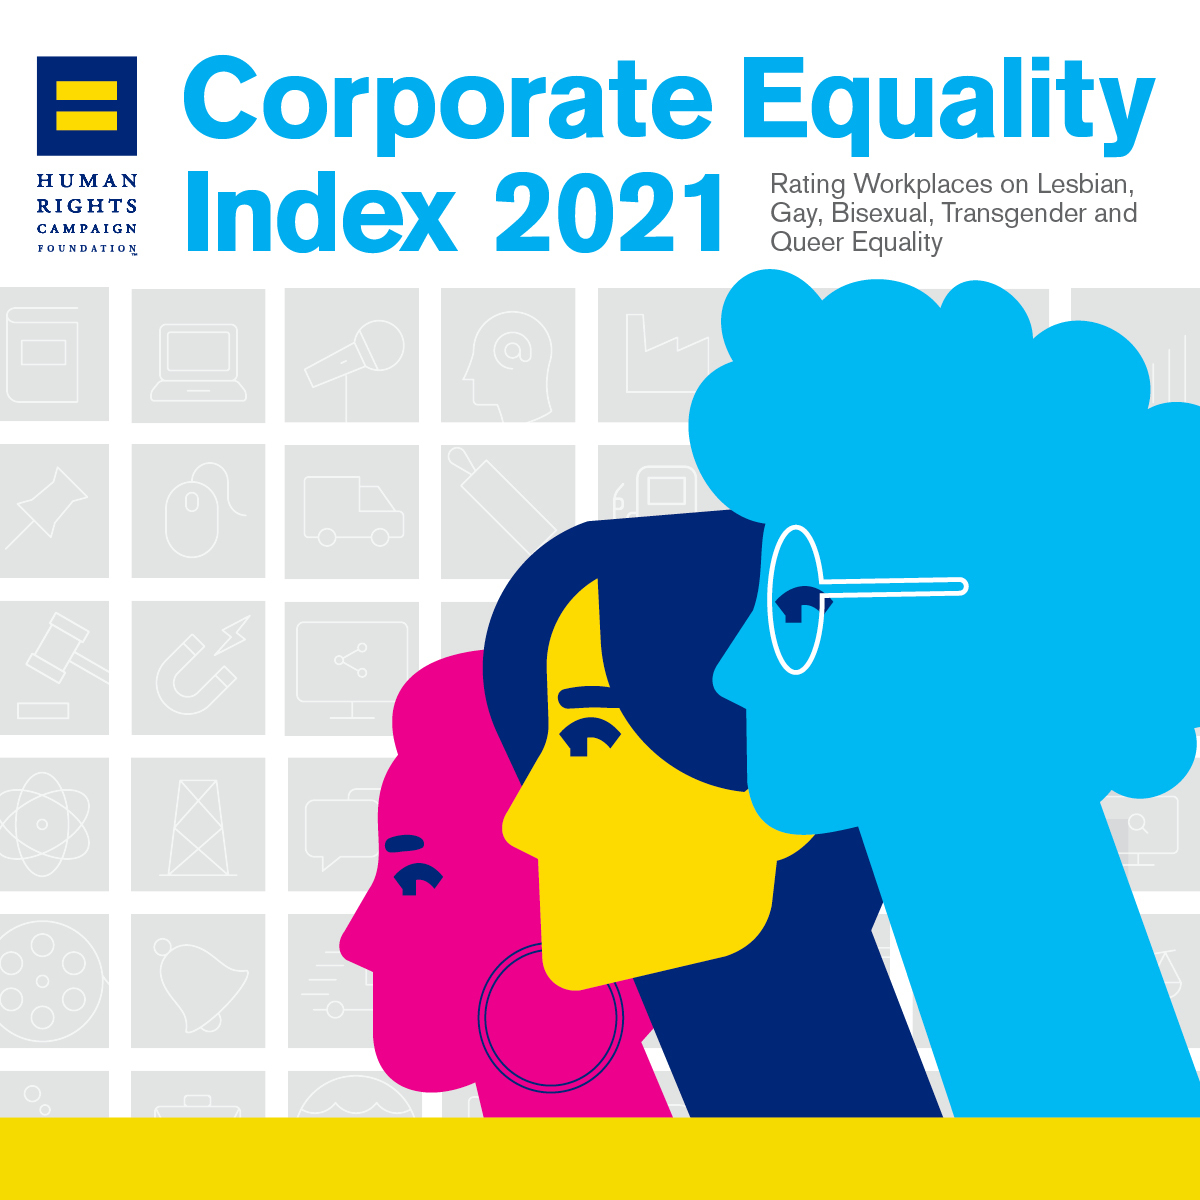 Corporate Equity Index 2021